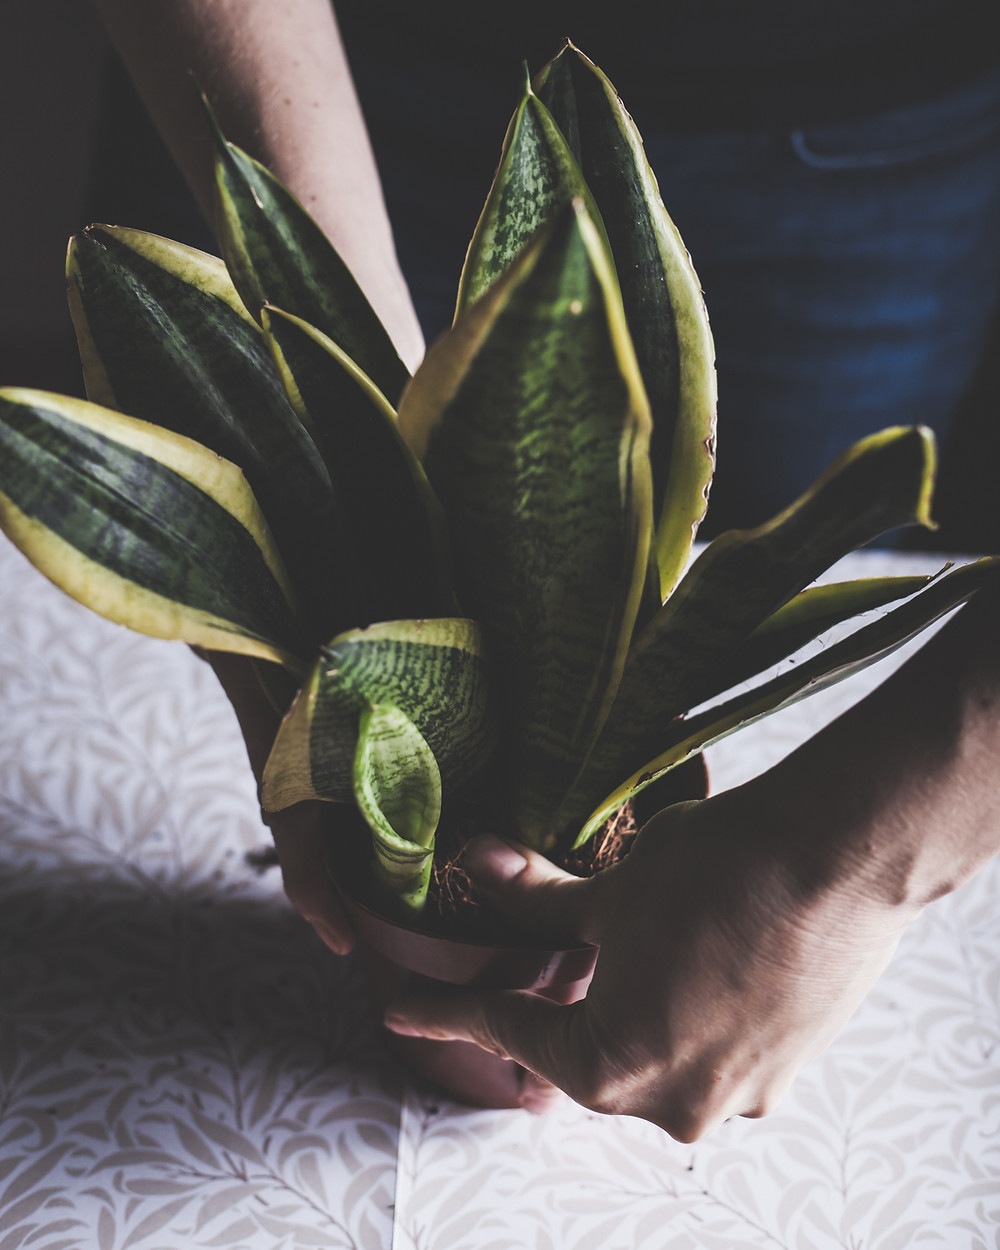 Tips for looking after houseplants